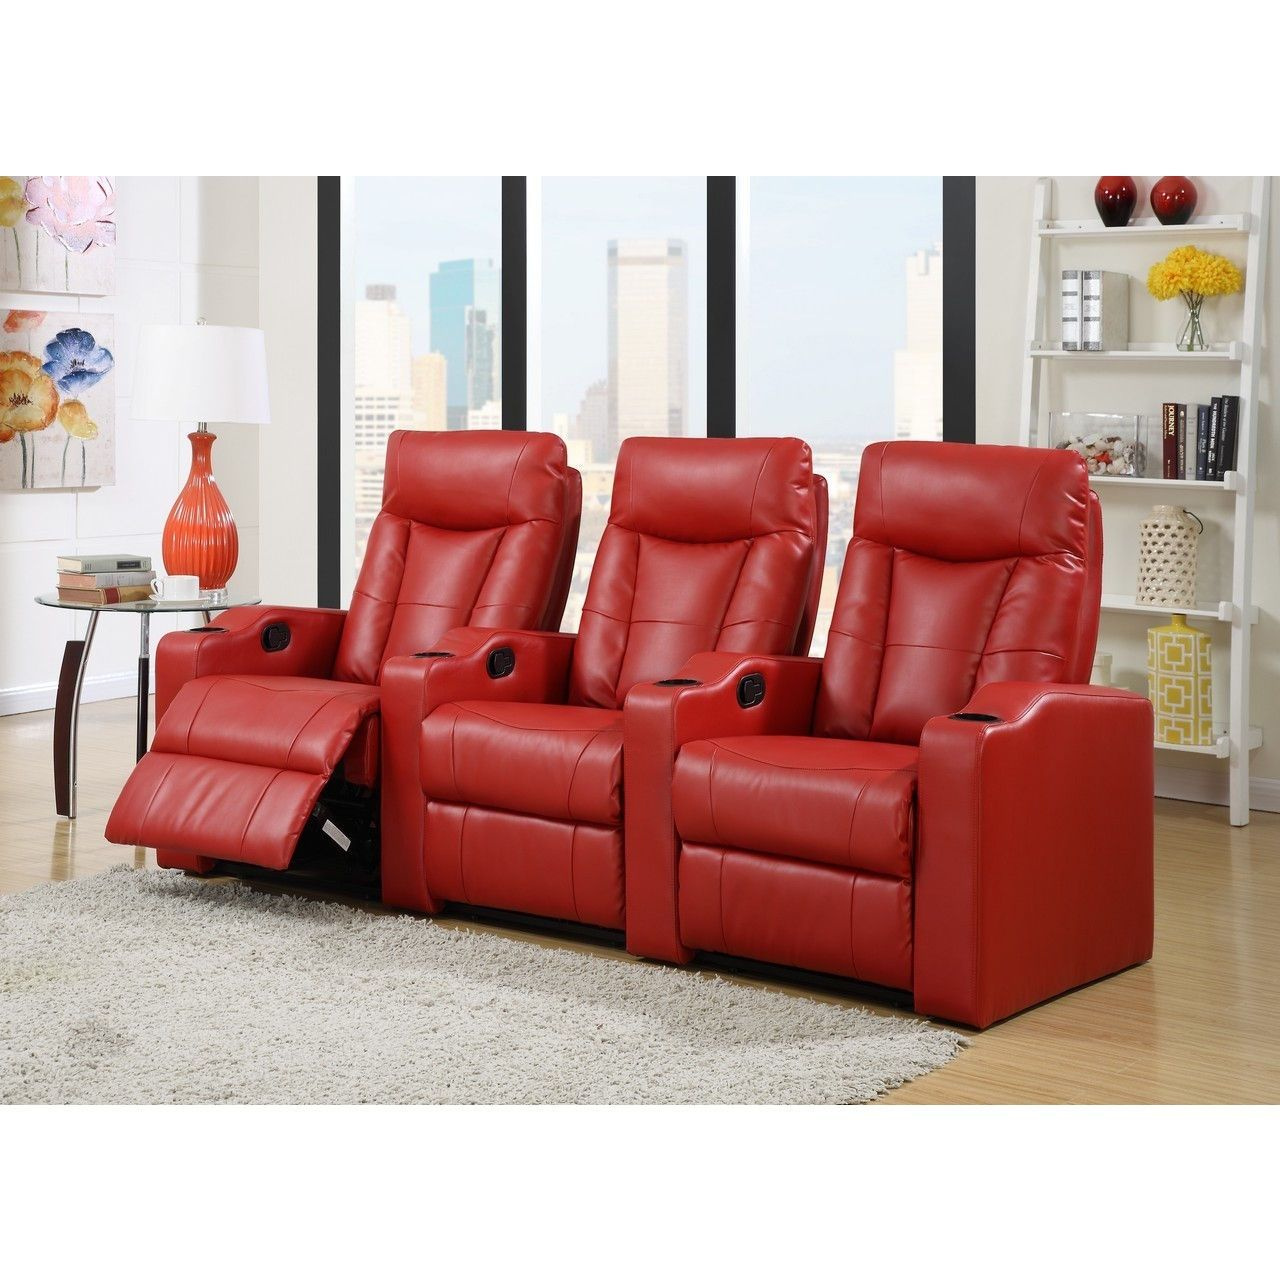 Premium Home Theater Recliner Chair Discount Decor Cheap Mattresses Affordable Lounge Suites Home Theater Seating Home Theater Sofa